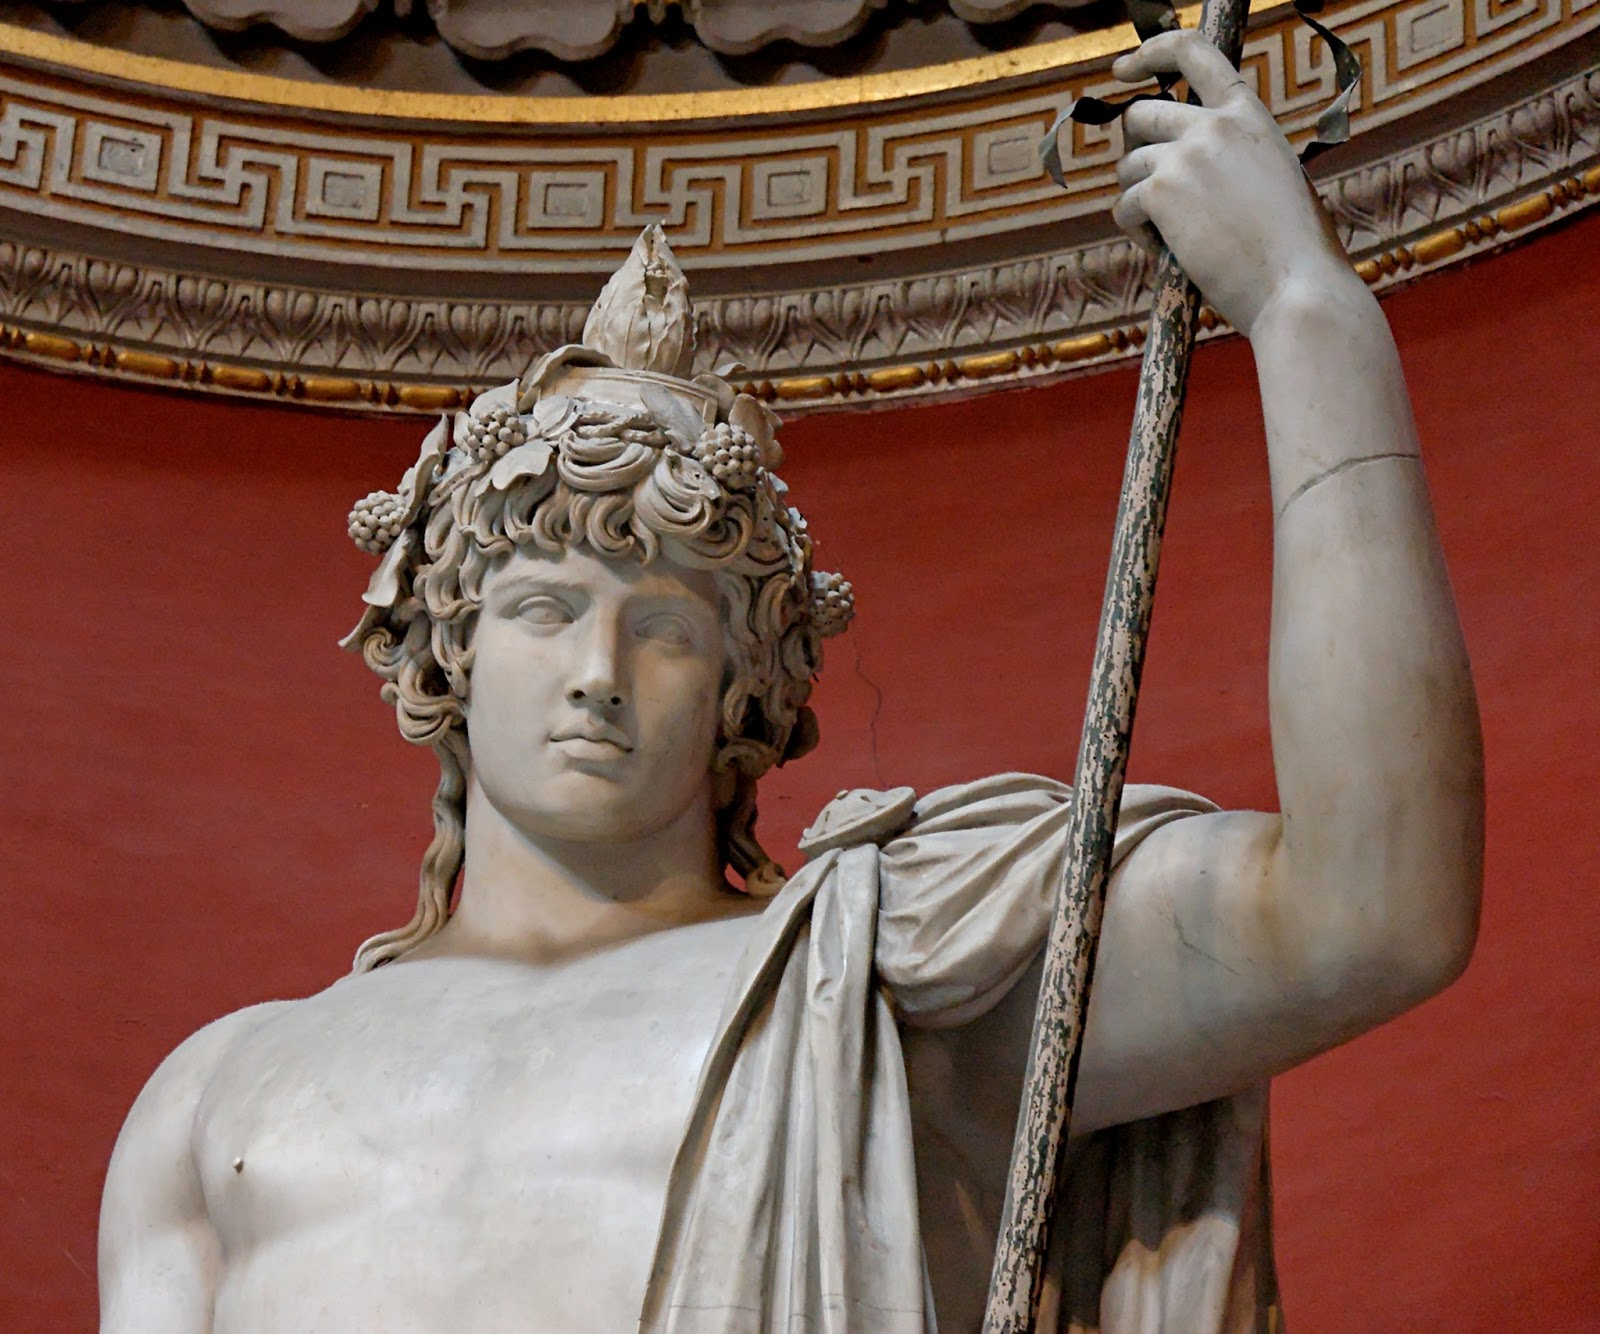 Reinette: Ancient Roman Hairstyles And Headdresses During